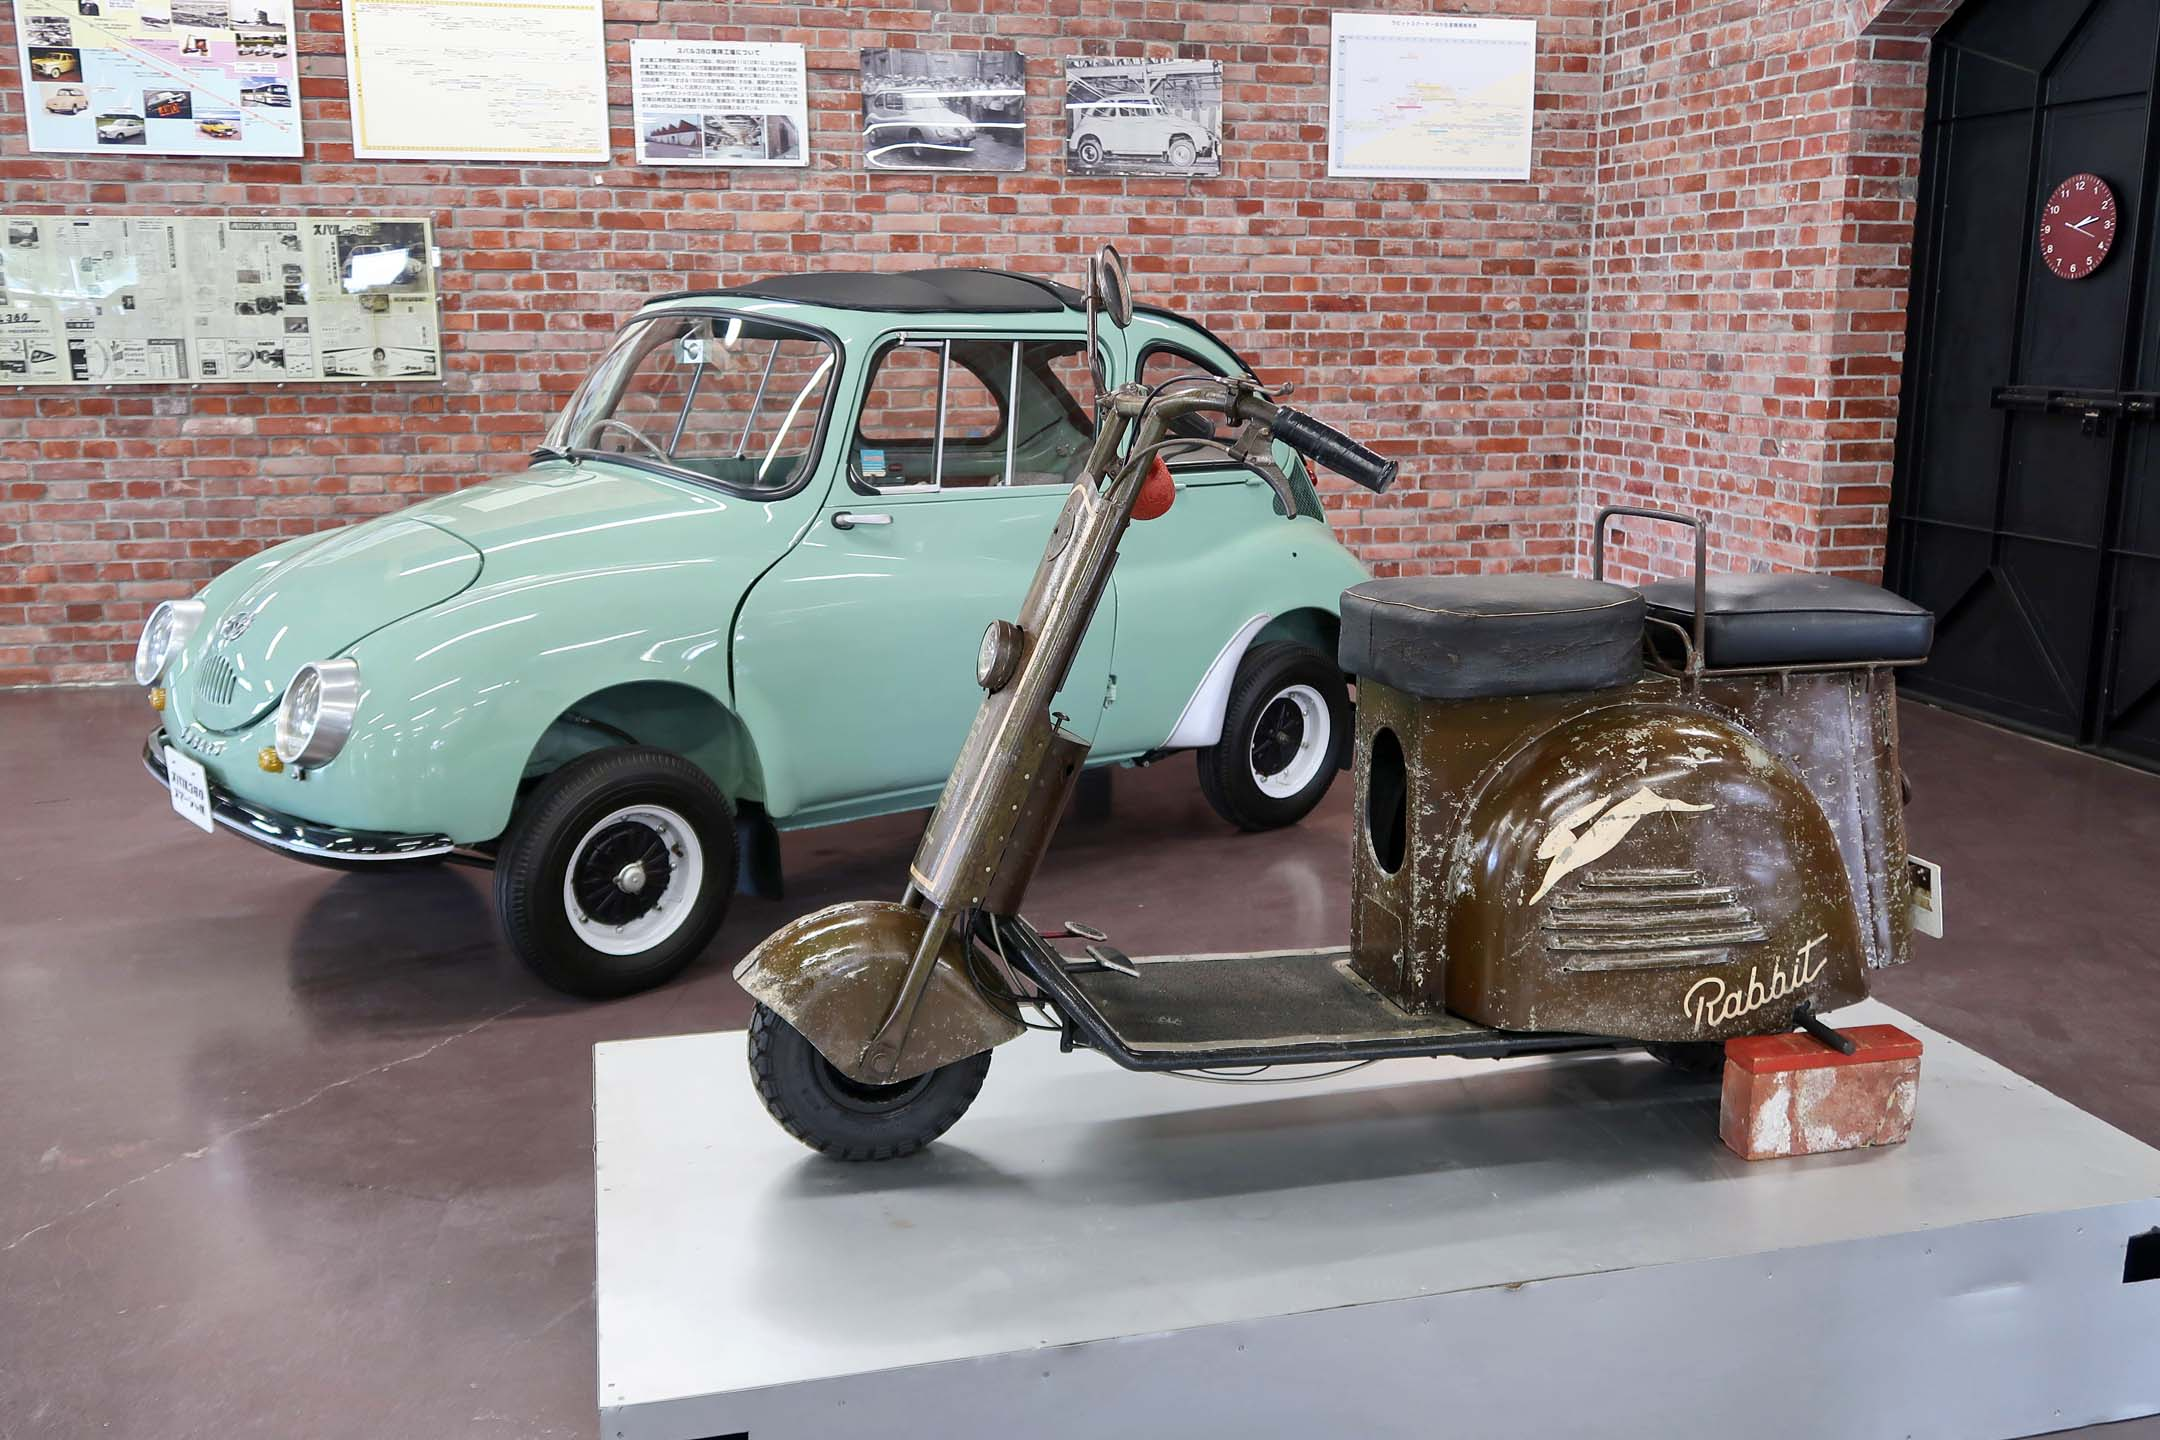 Subaru's first products, the Rabbit and 360